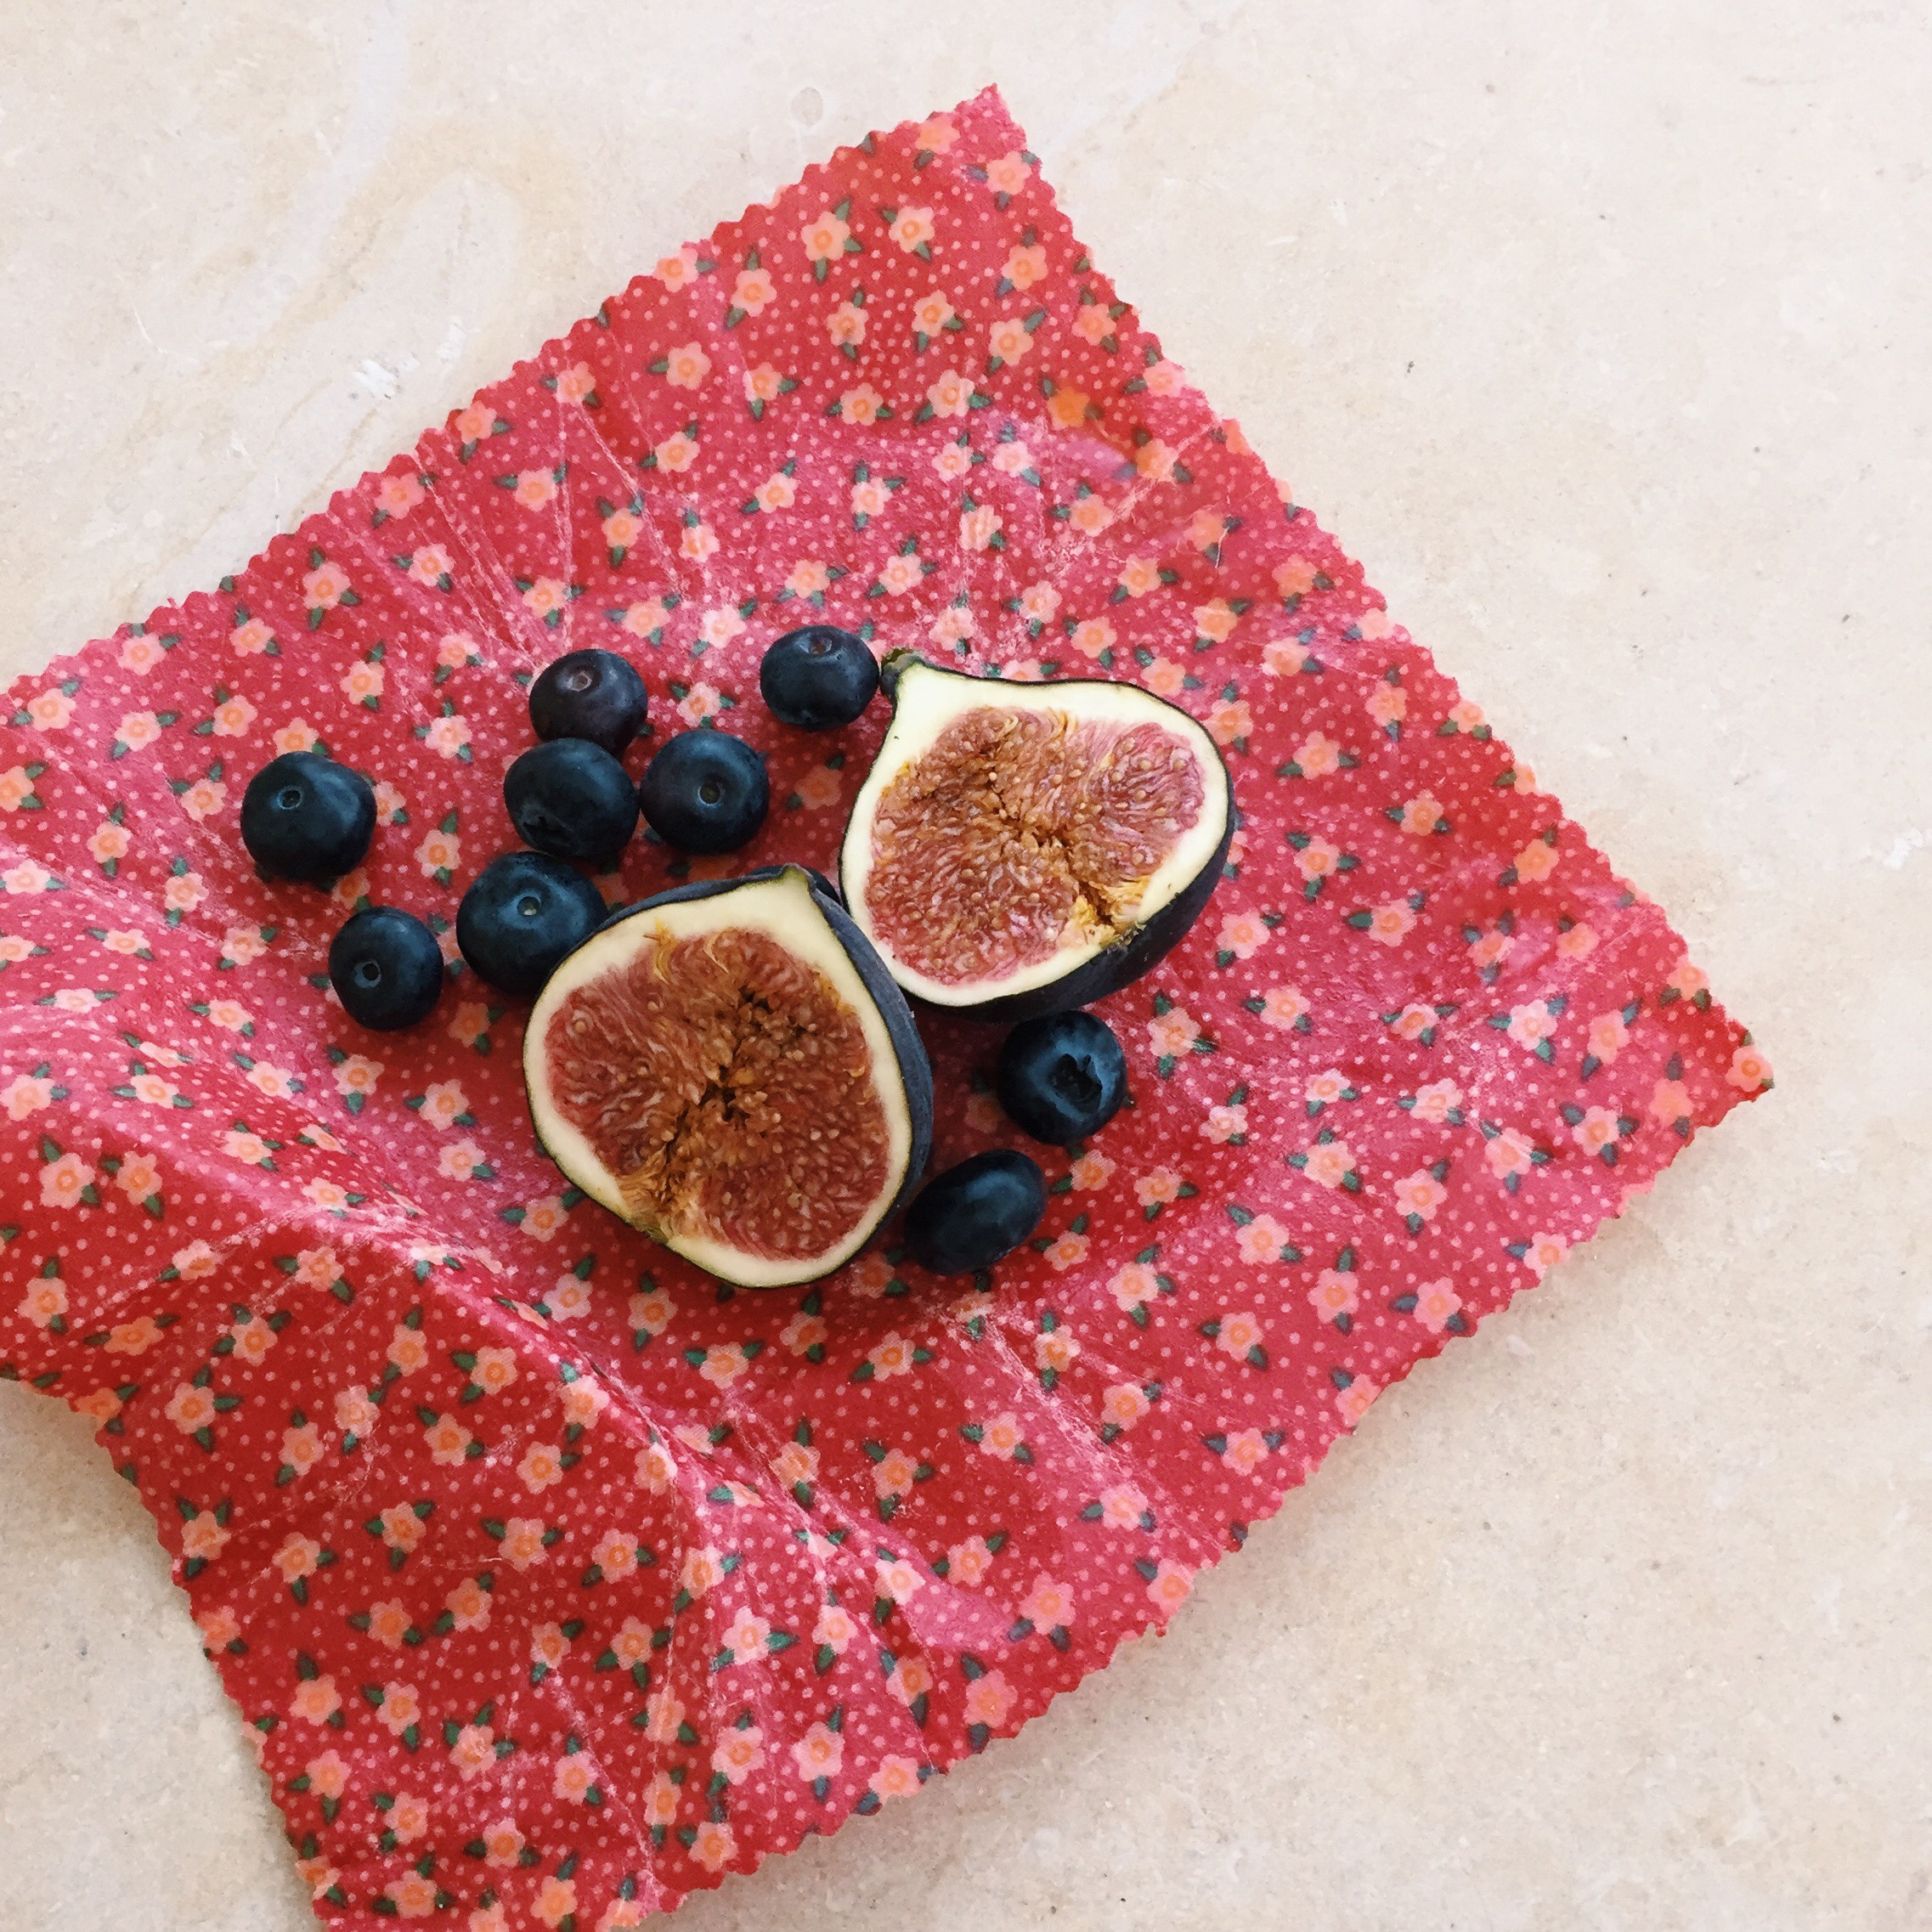 Homemade Beeswax Wraps